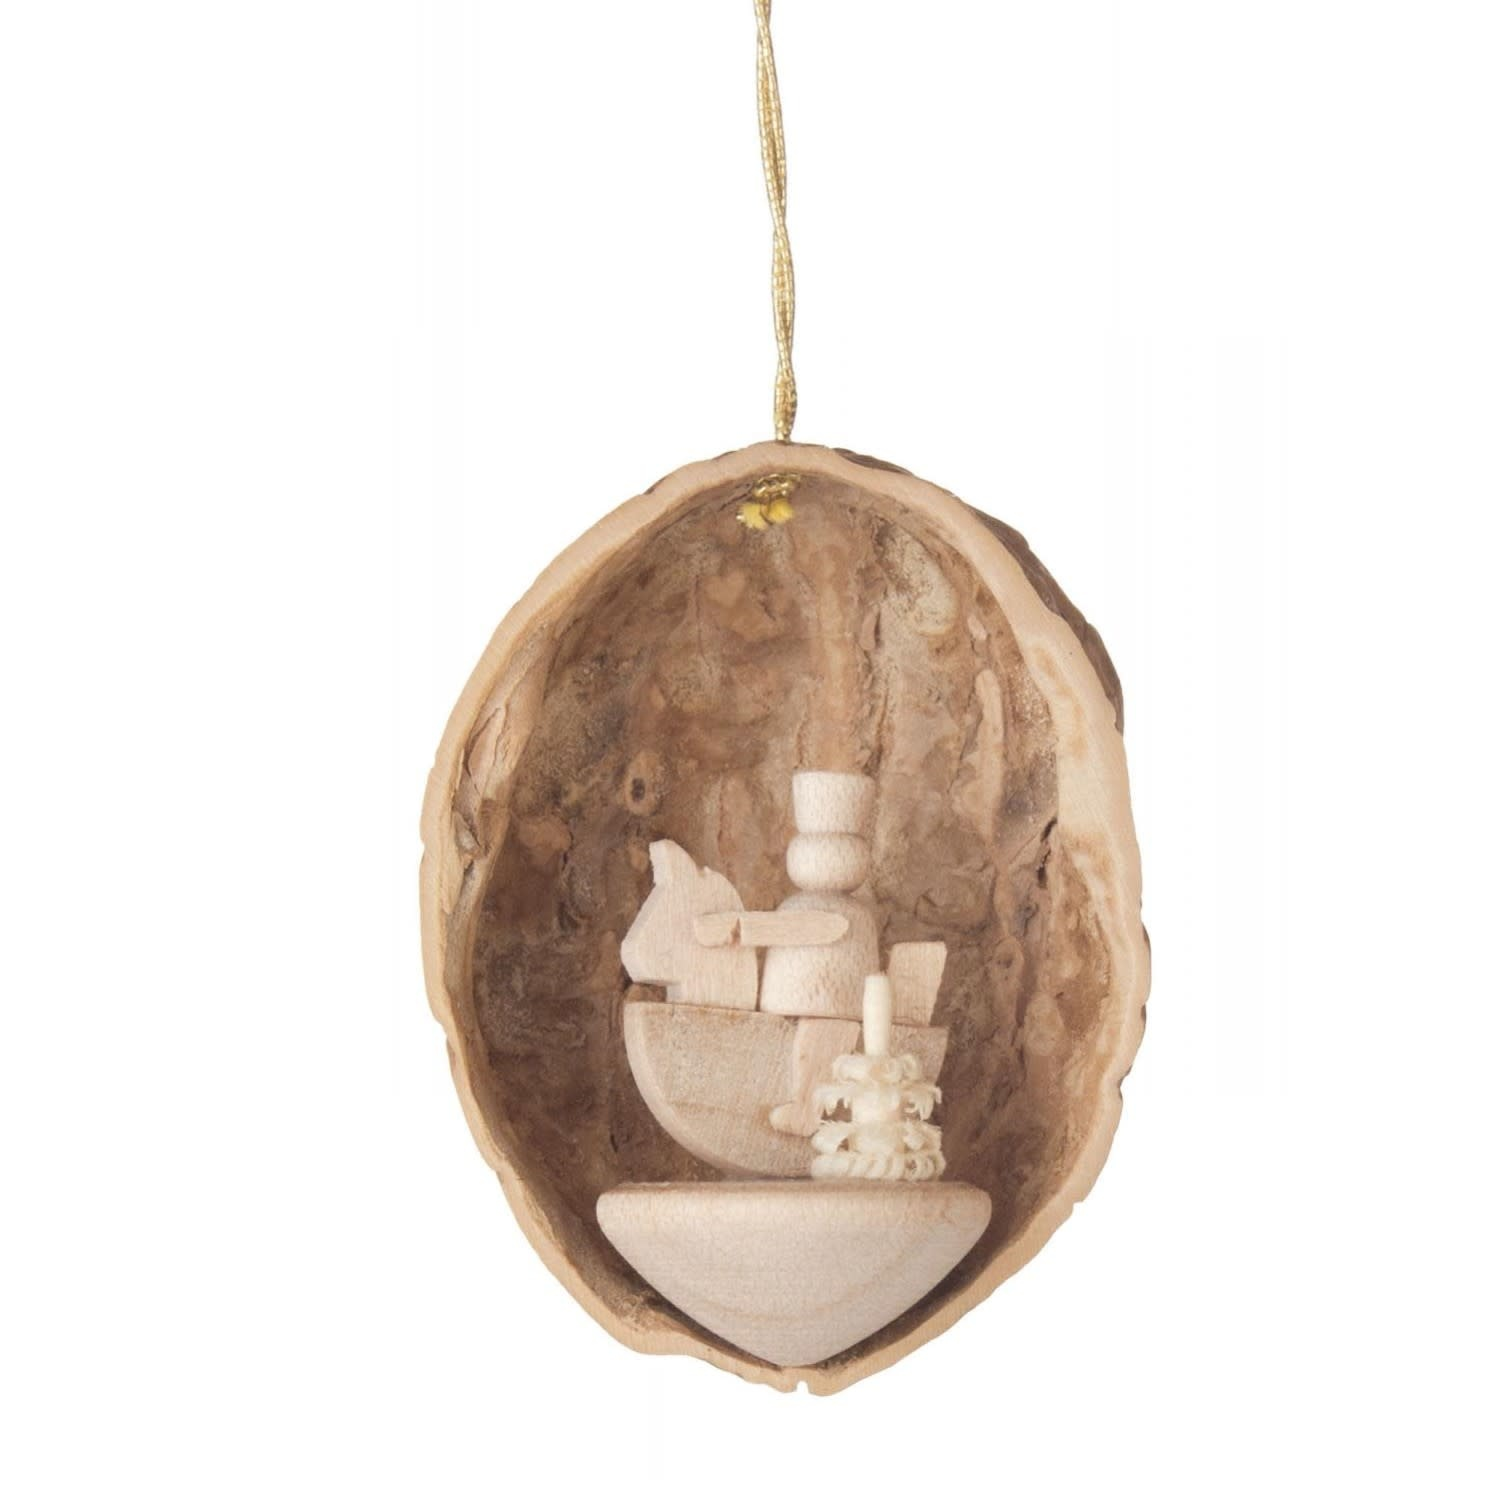 199/117   Walnut shell  Ornament with little rider